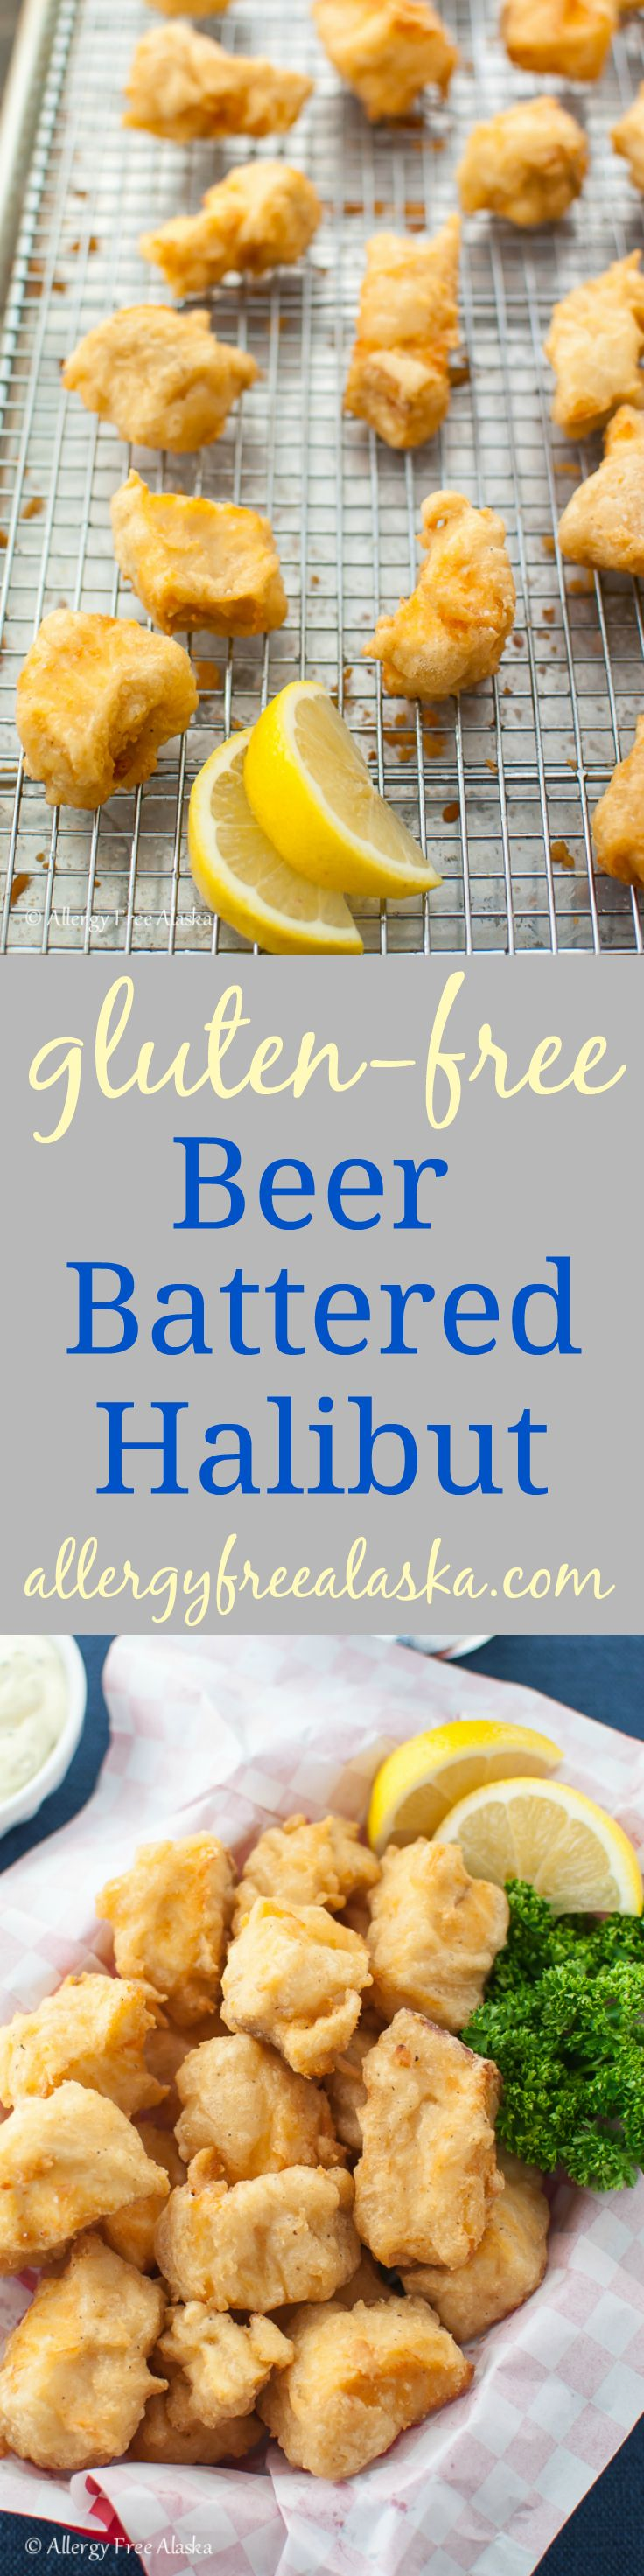 Gluten-Free Beer Battered Halibut Recipe from Allergy Free Alaska